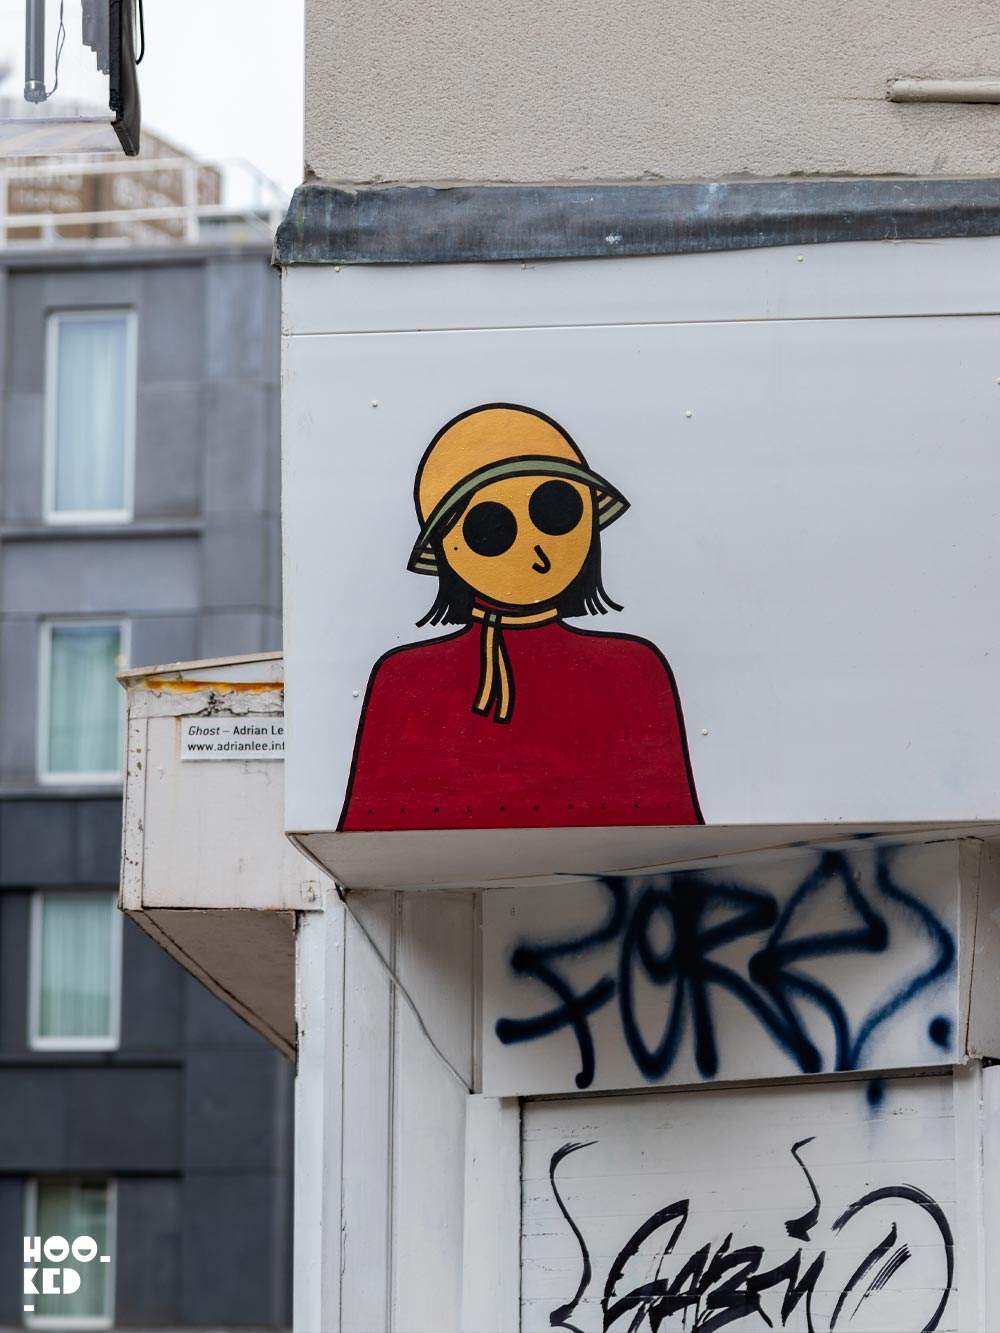 French Street Art Duo Kamlaurene's London Paste-ups